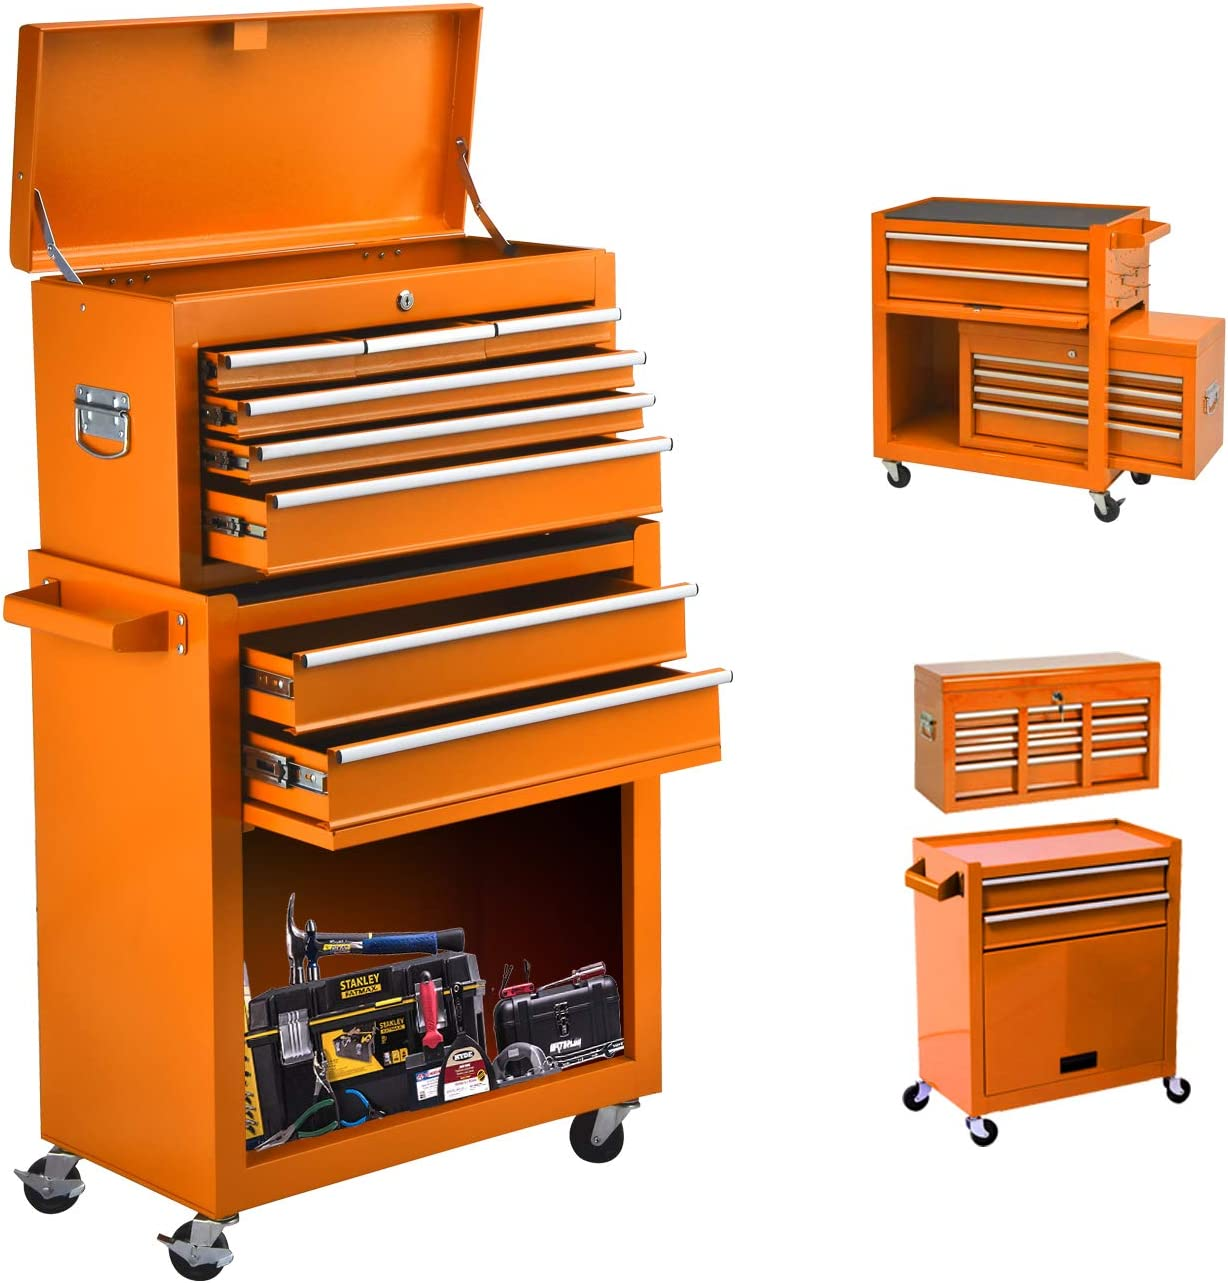 Indefinitely On Shine 8-Drawer Tool ChestTool Box Drawers with Detac Special Campaign Sliding